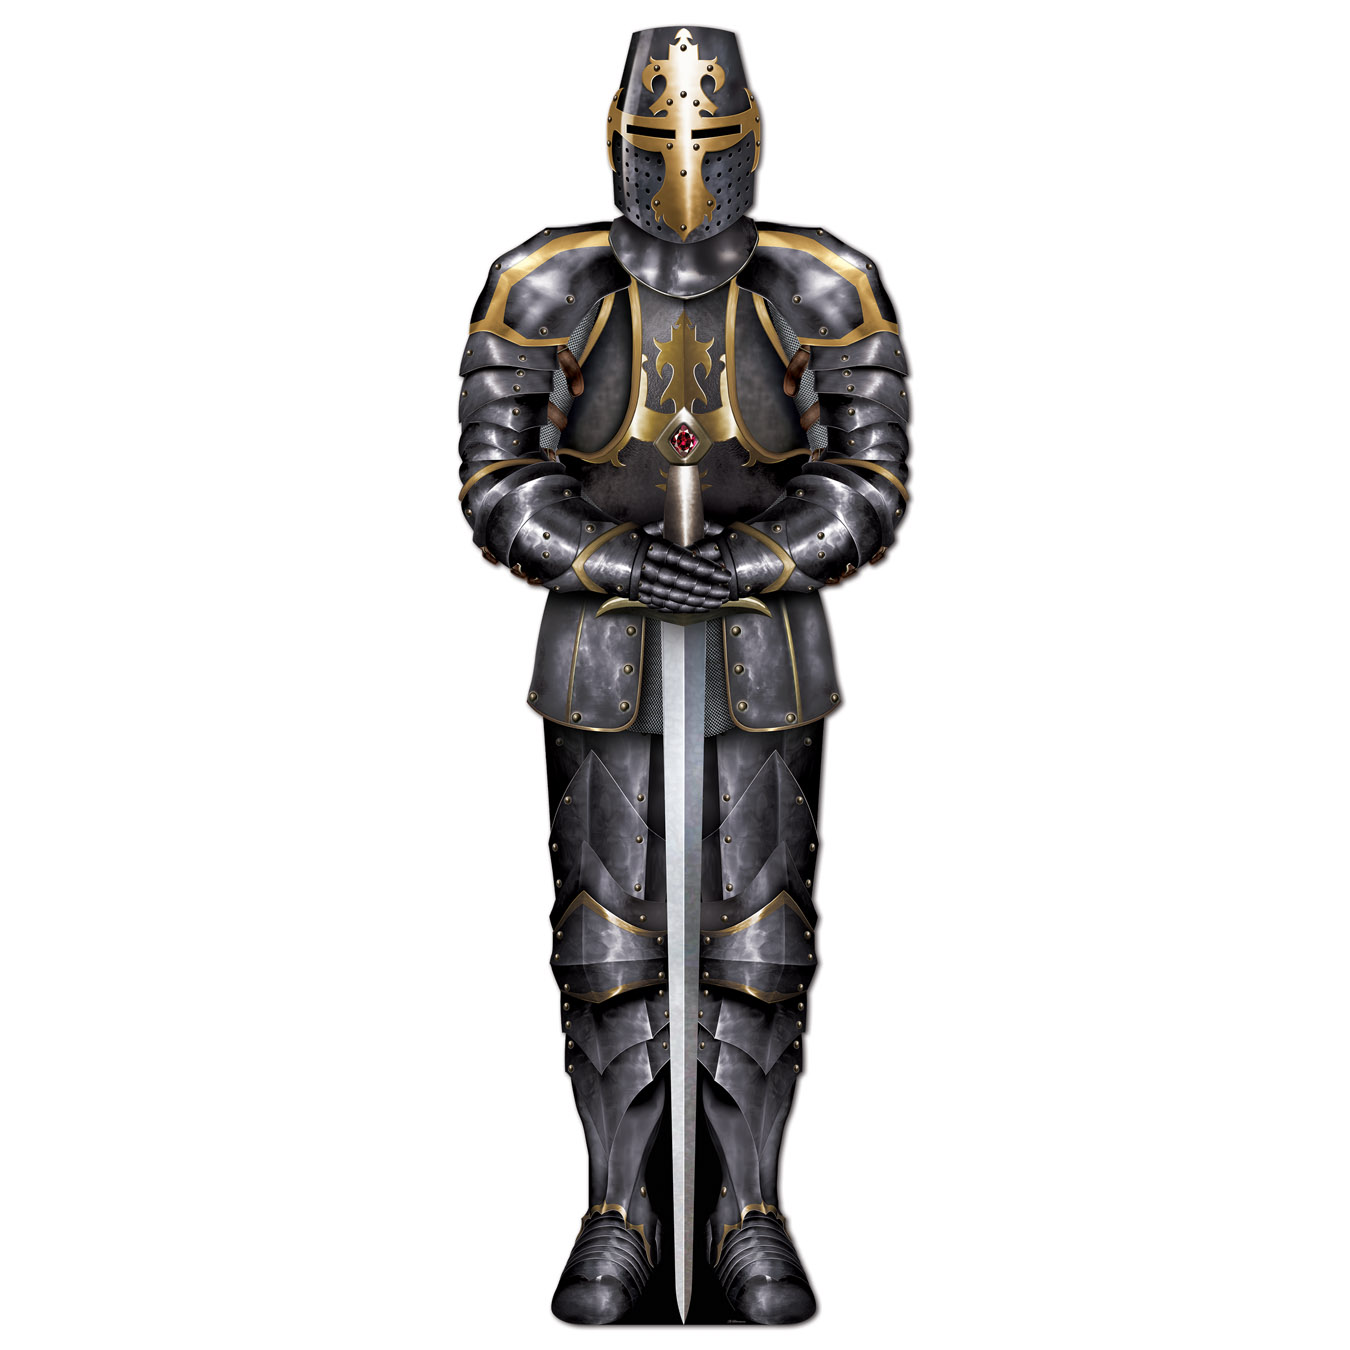 Jointed Black Knight (Pack of 12) Jointed Black Knight, decoration, medieval, knight, new years eve, halloween, wholesale, inexpensive, bulk